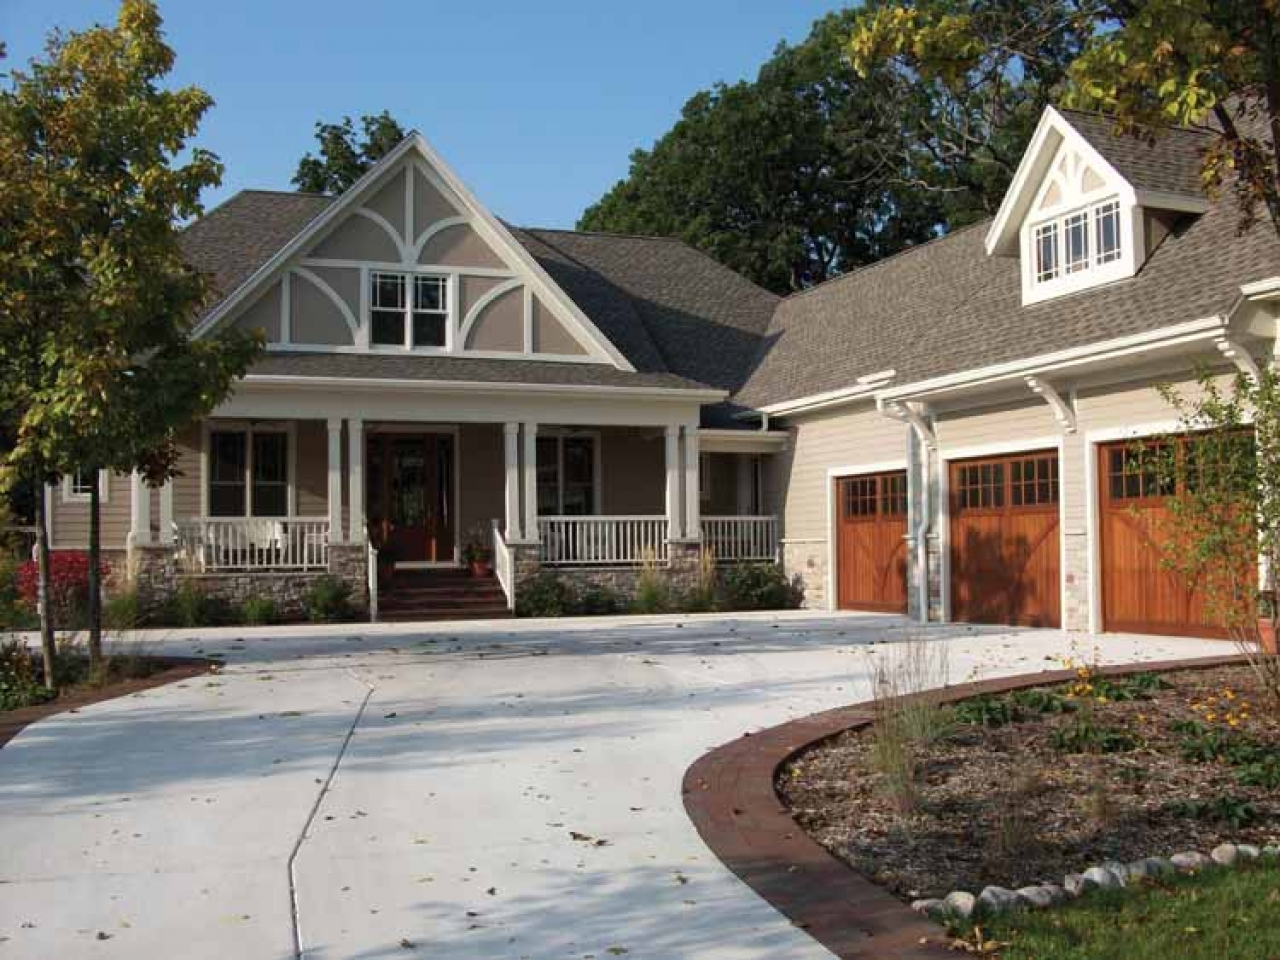 Award winning craftsman house plans craftsman style house for Award winning home designs